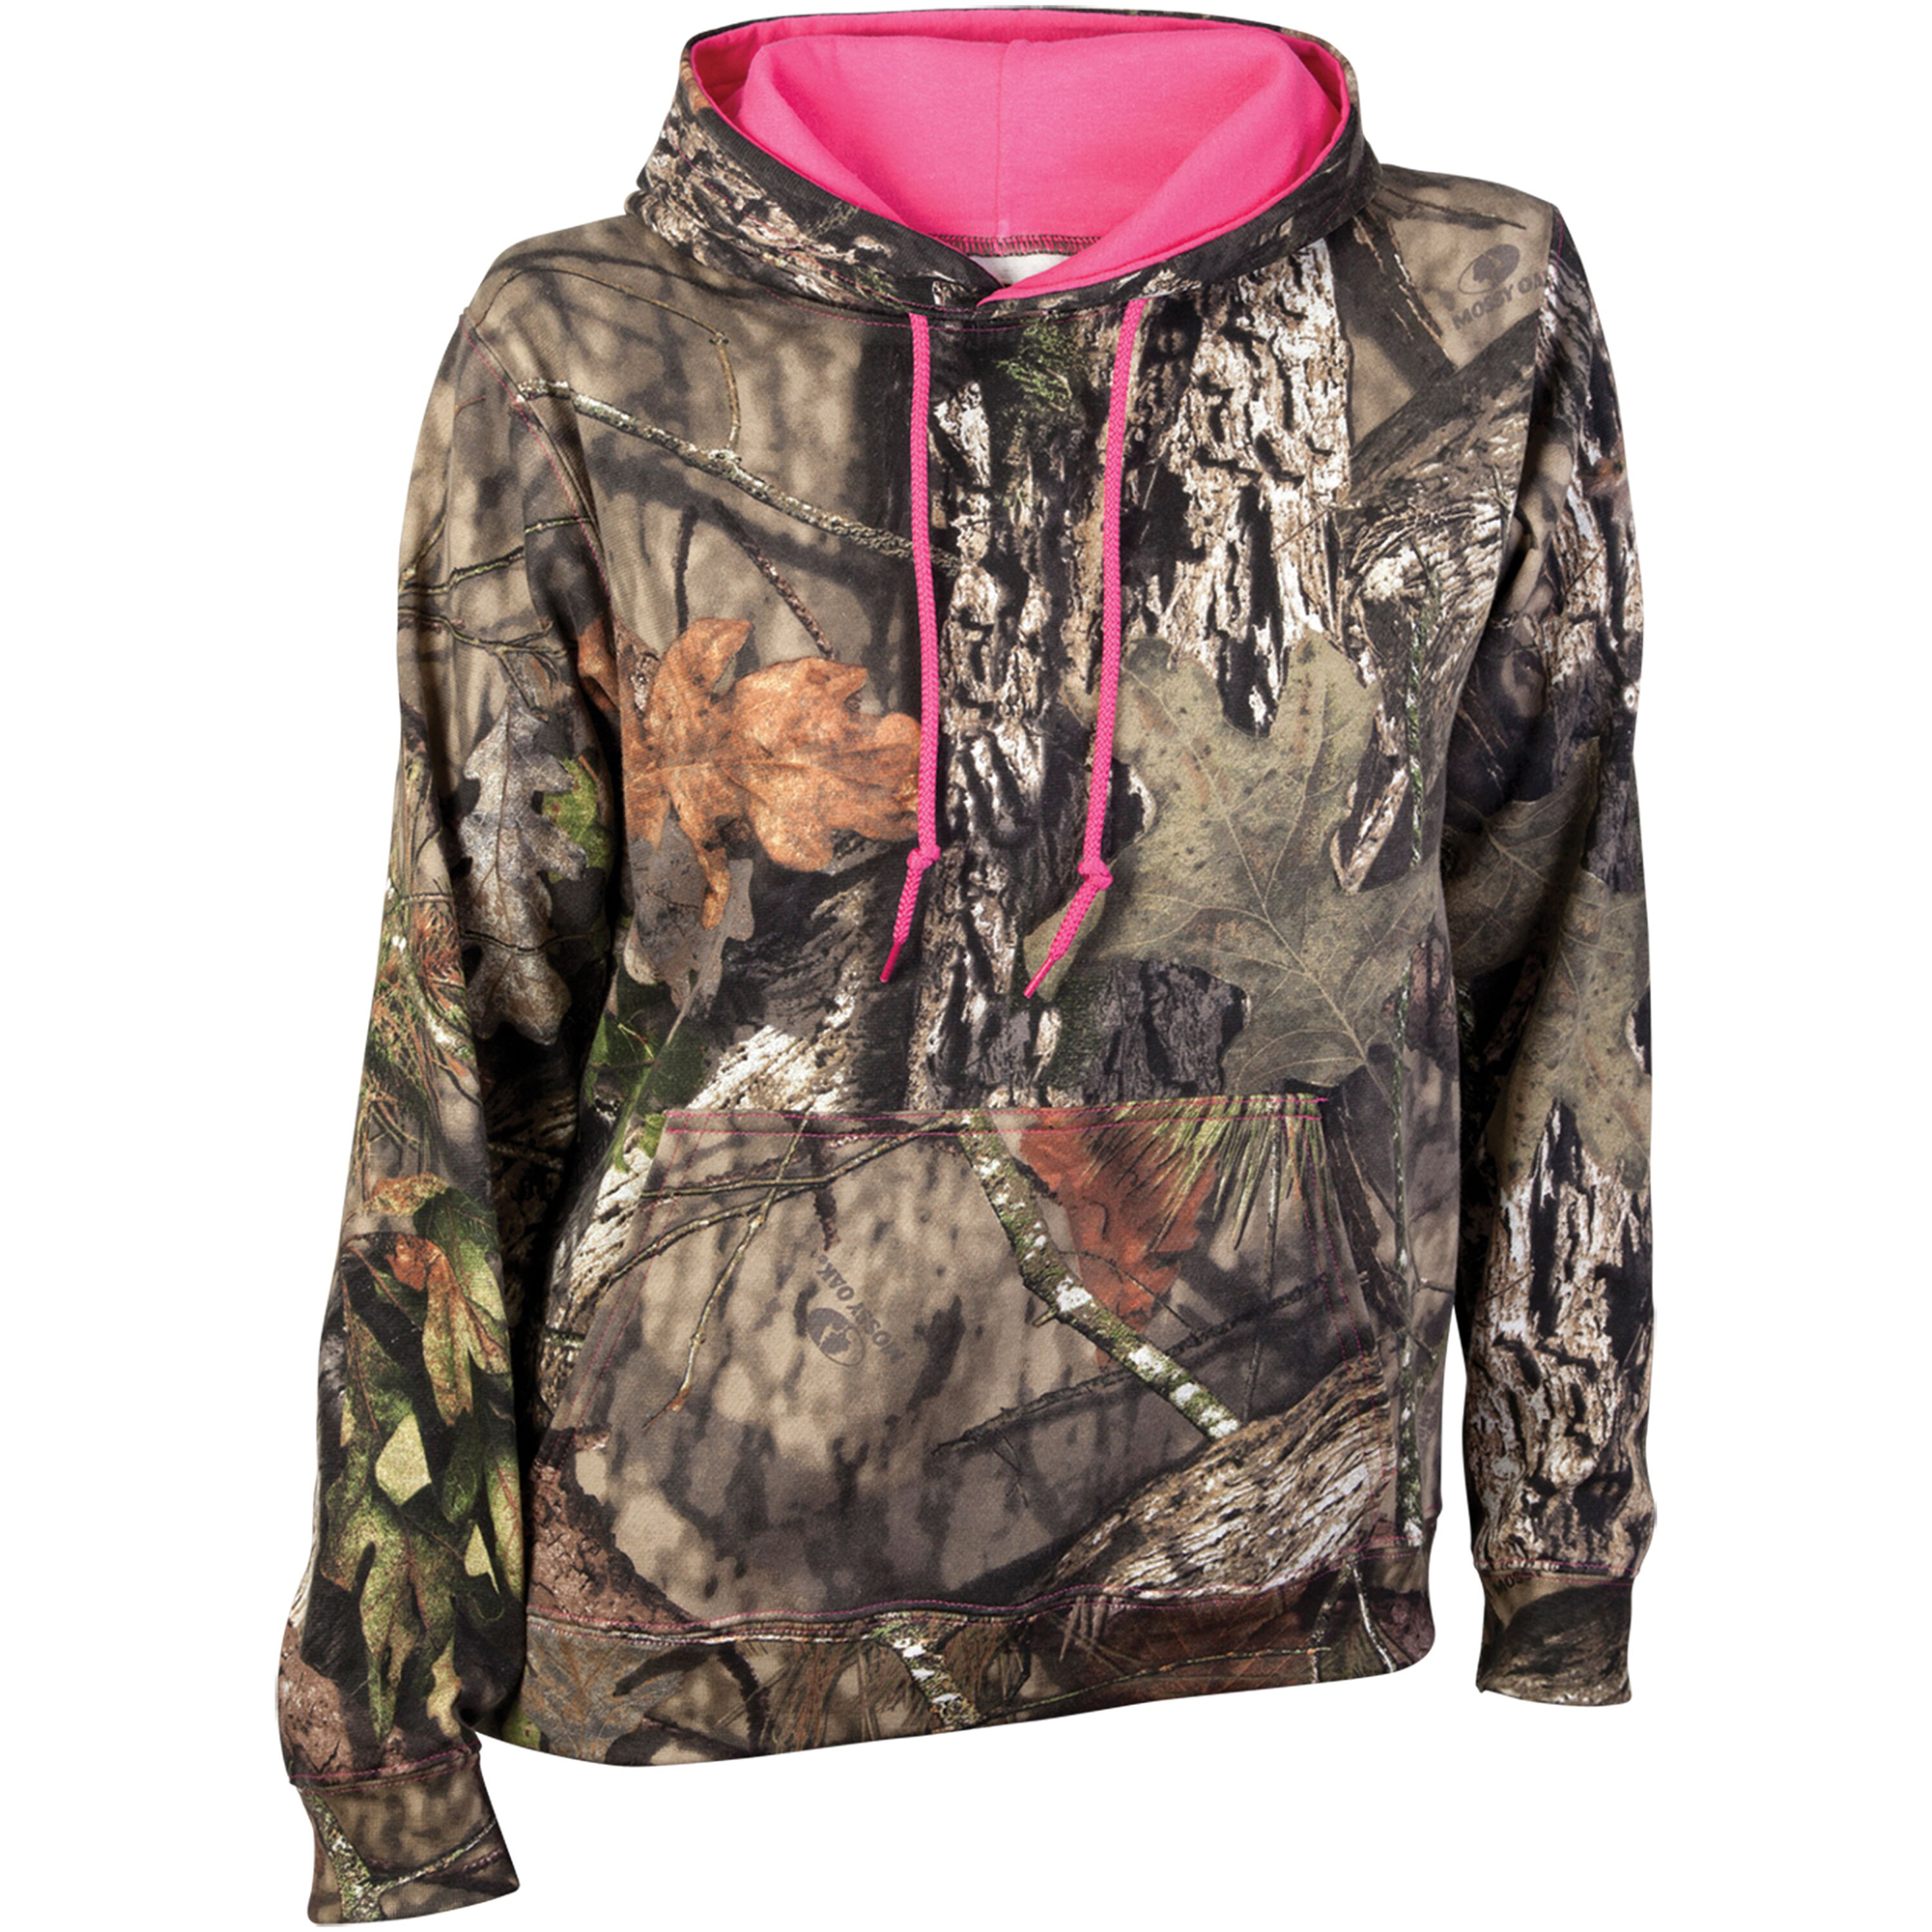 Gildan Women's Camo Pullover Hoodie – Mossy Oak Break-Up Country